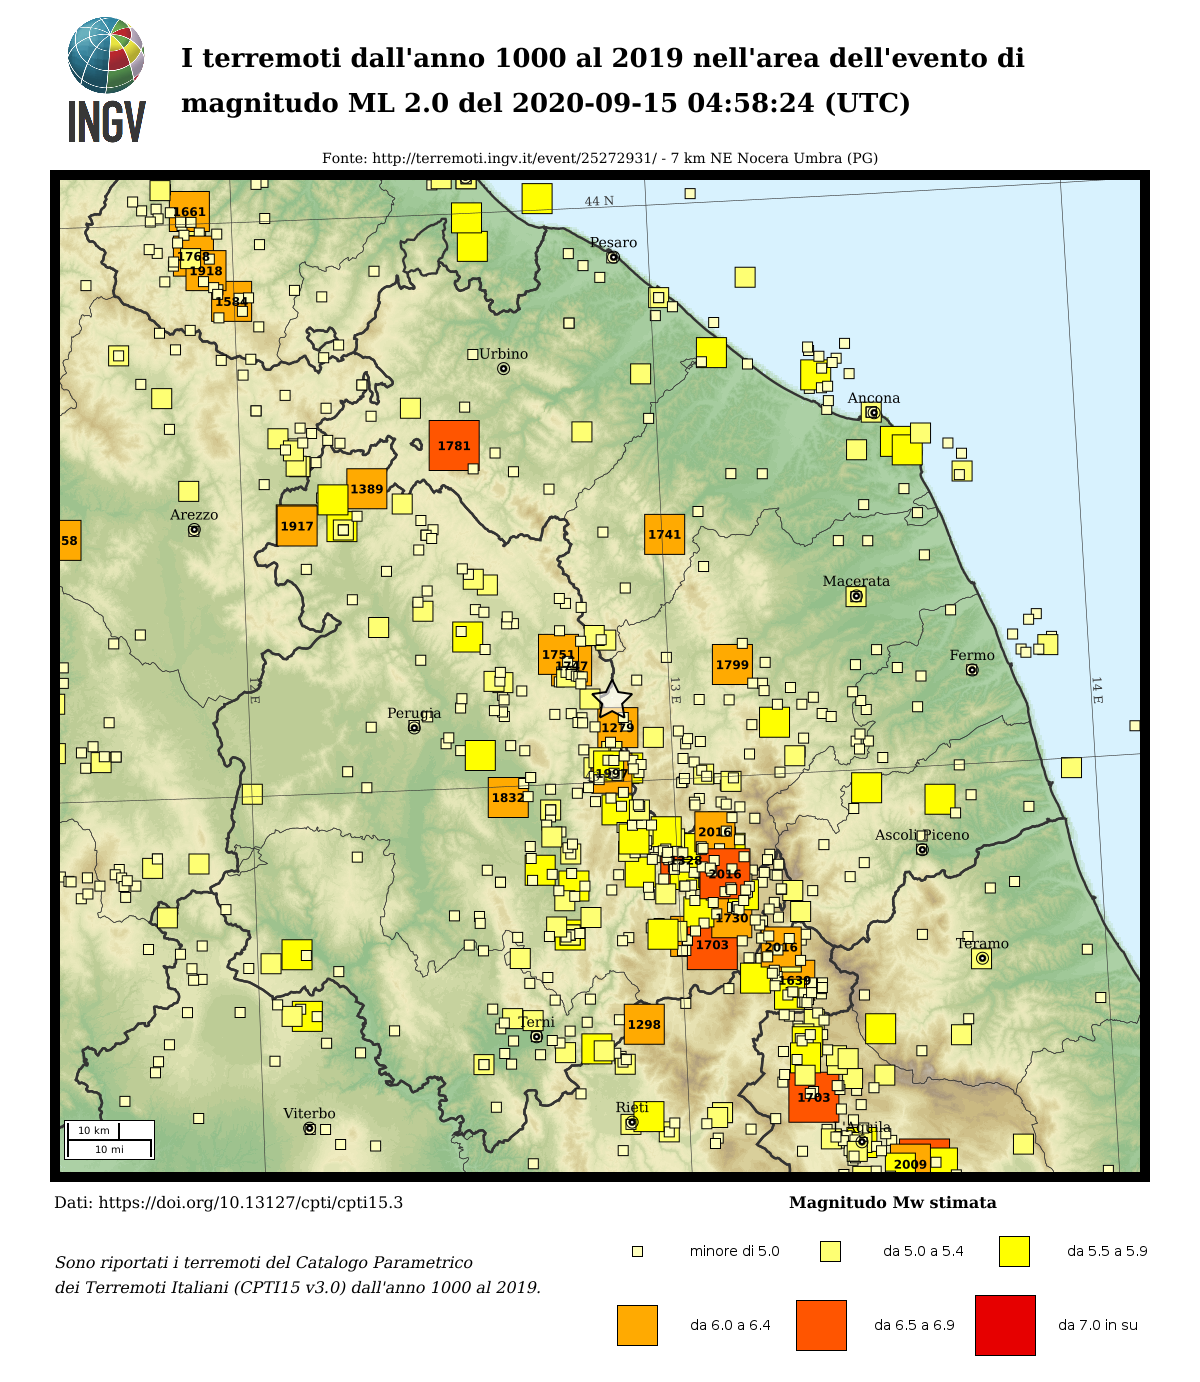 Earthquakes since 1000 AD until 2014